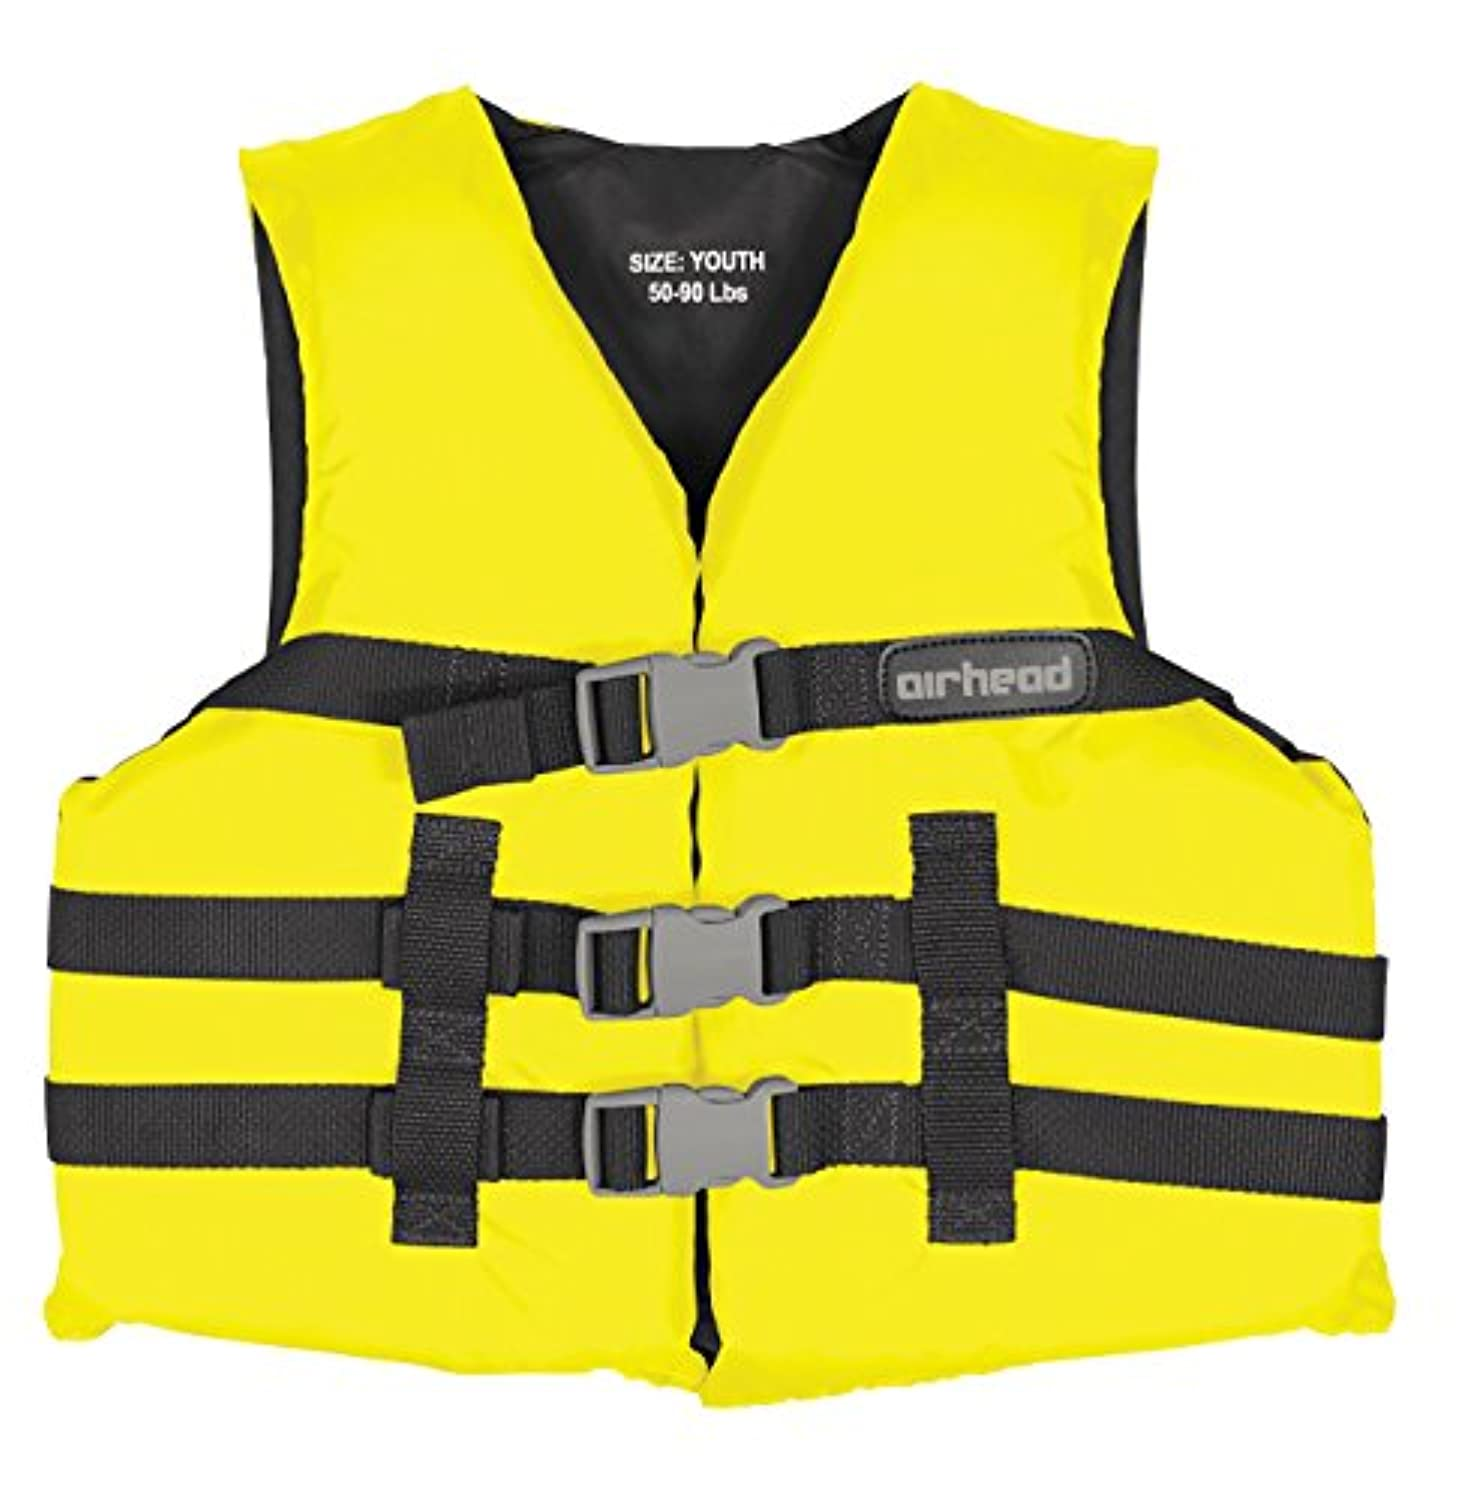 Kwik Tek Airhead Nylon Youth Pfd Open Side Yellow 10002-03-A-Yw by Kwik